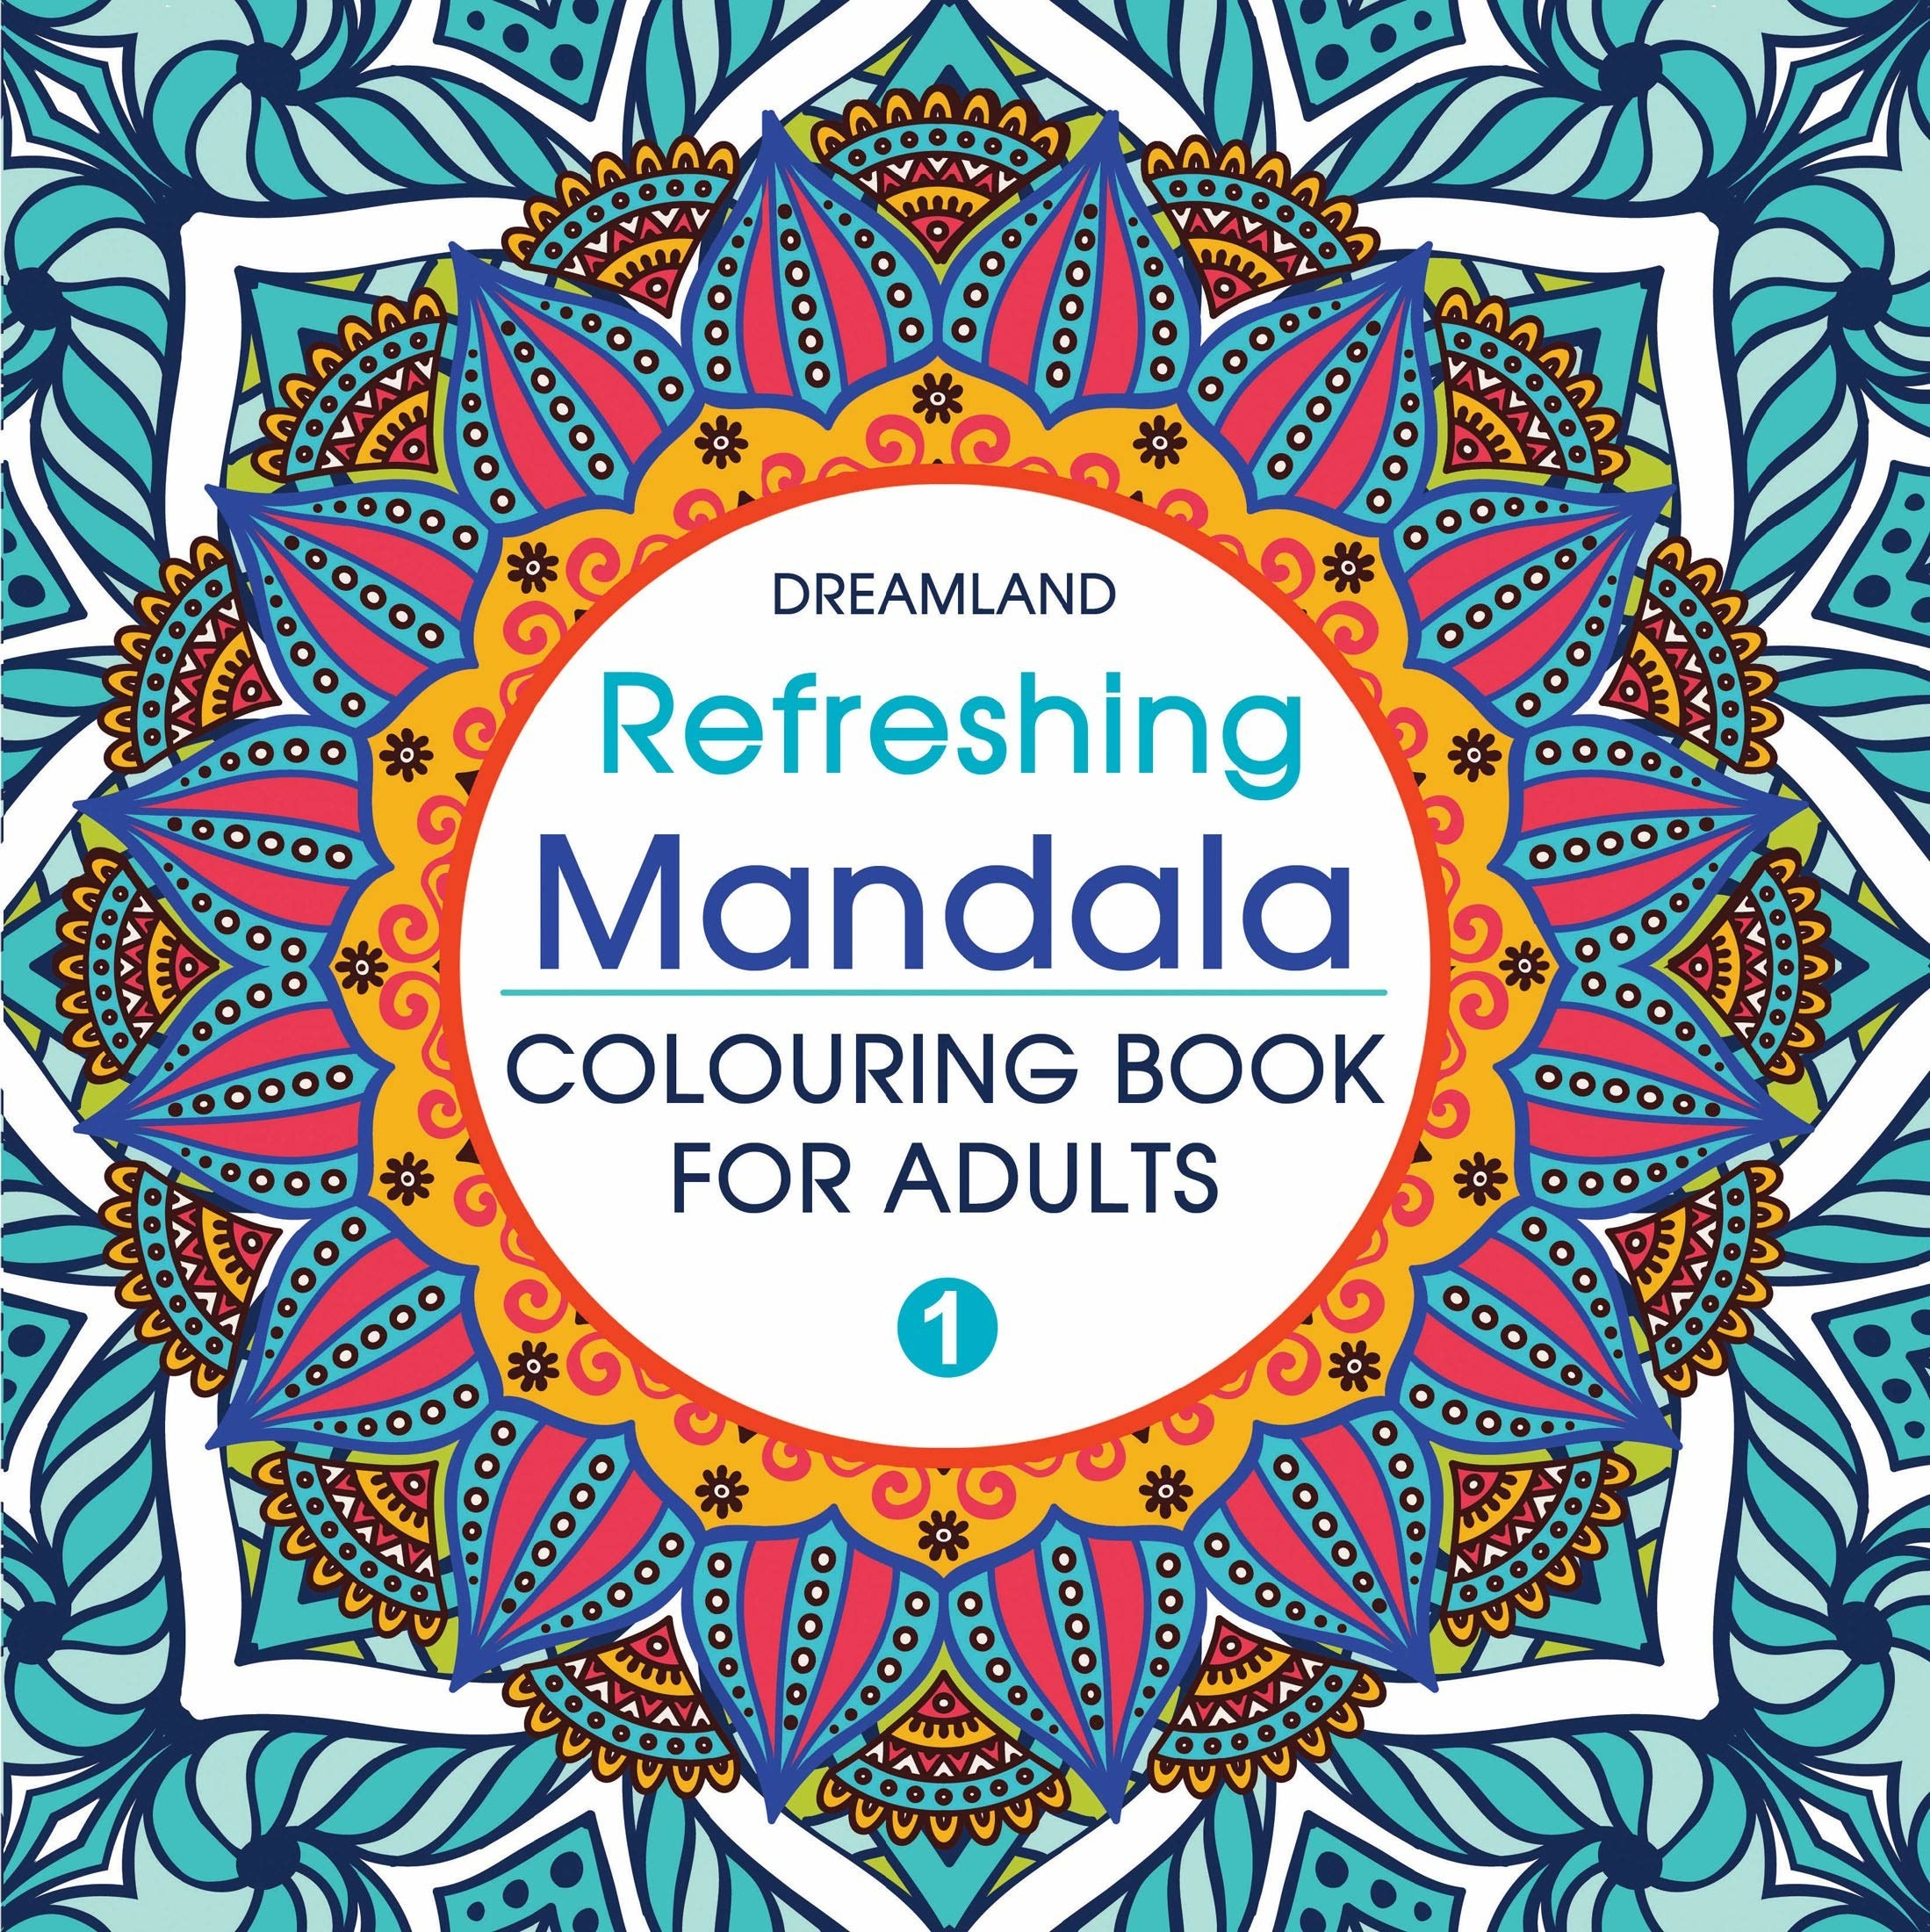 Cover of the Mandala colouring book